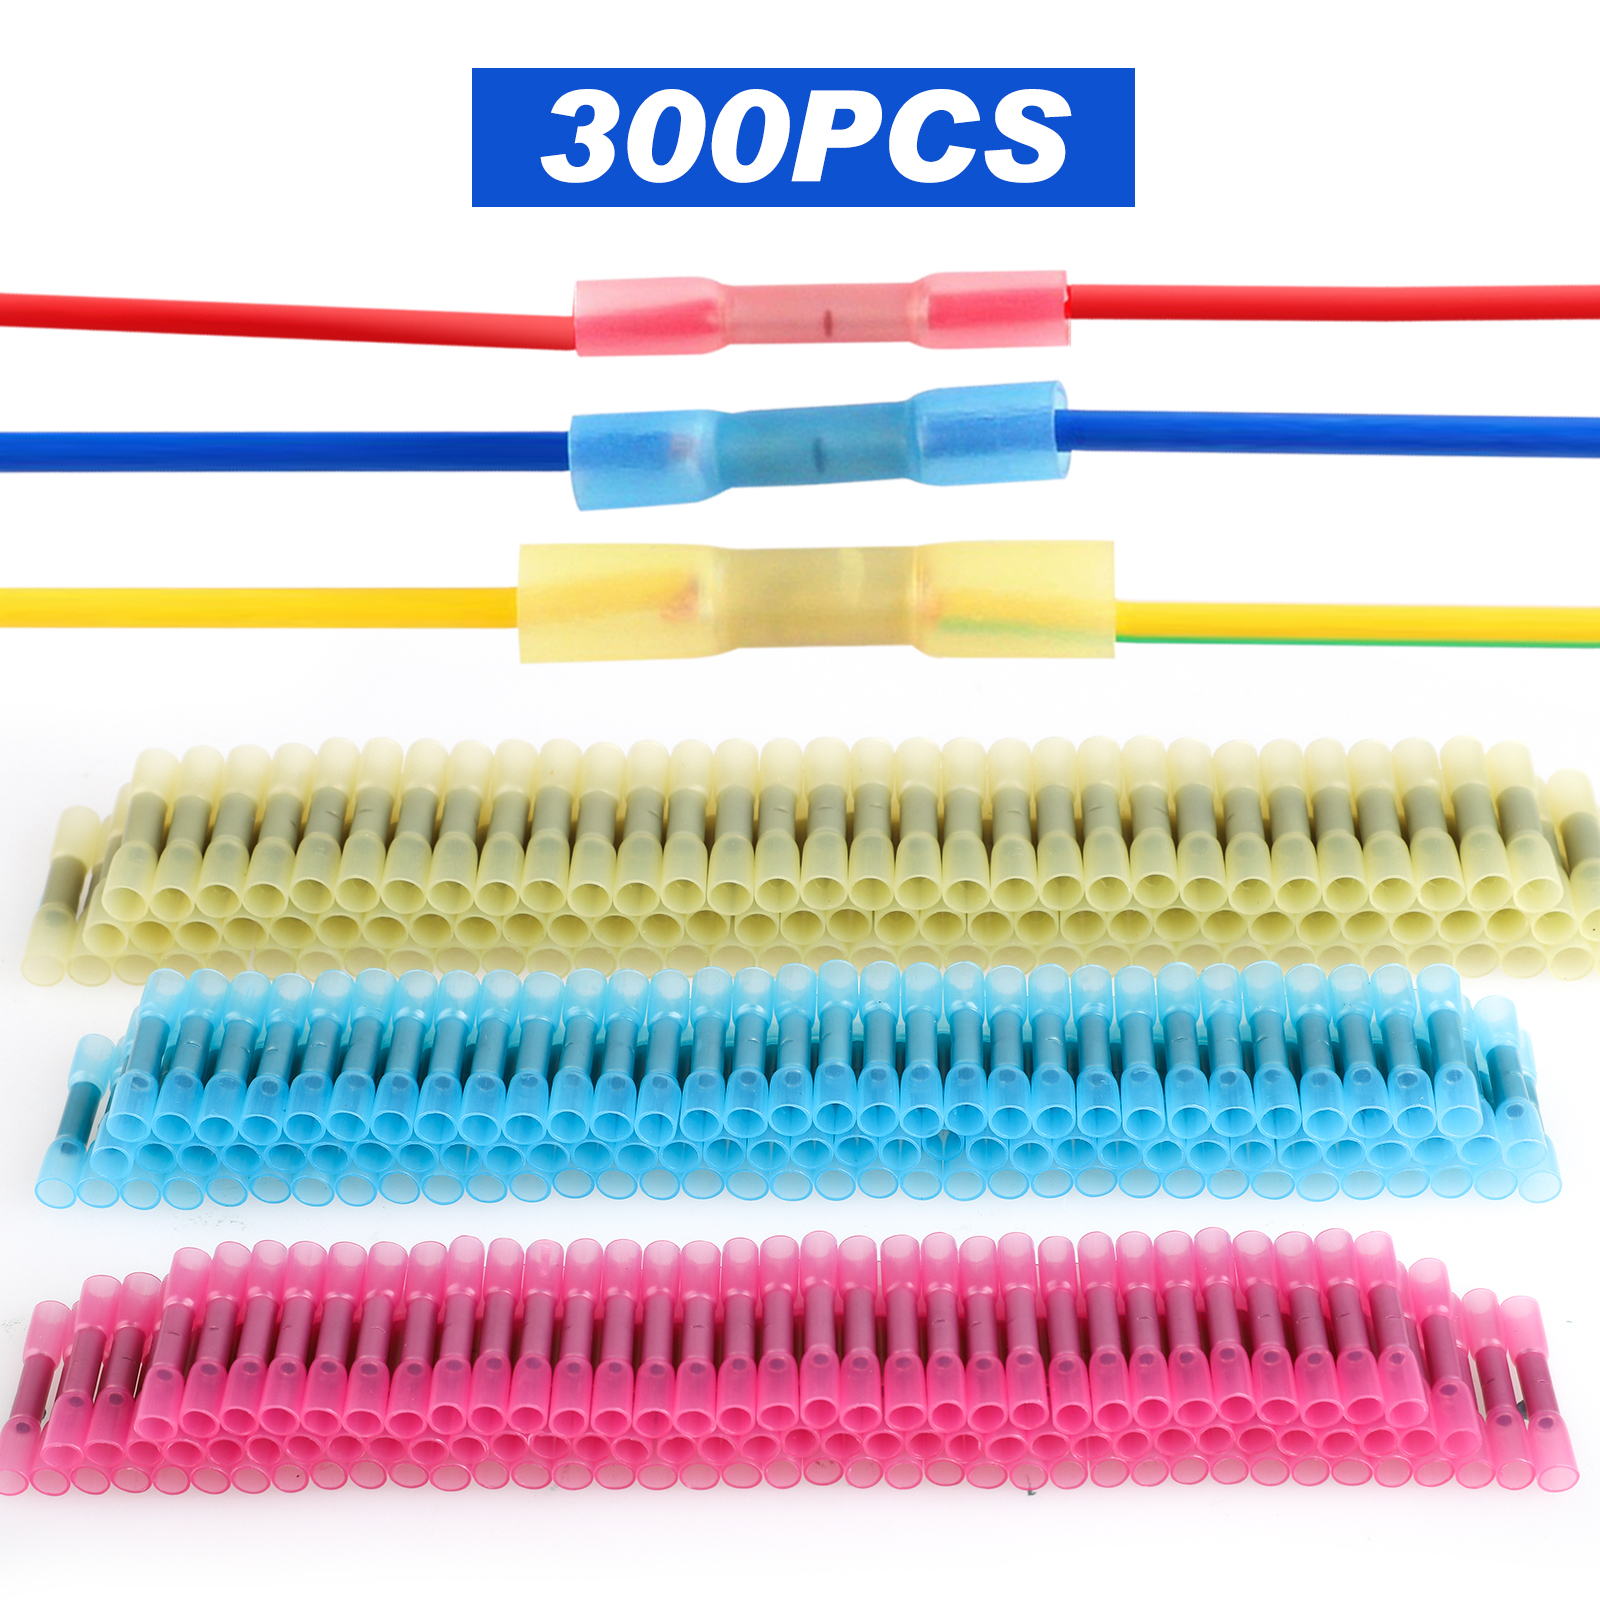 300-pack Heat Shrink Butt Connectors, Crimp Wire Connector Waterproof Insulated Splice Terminal for Marin Boat Automotive Terminal Kit